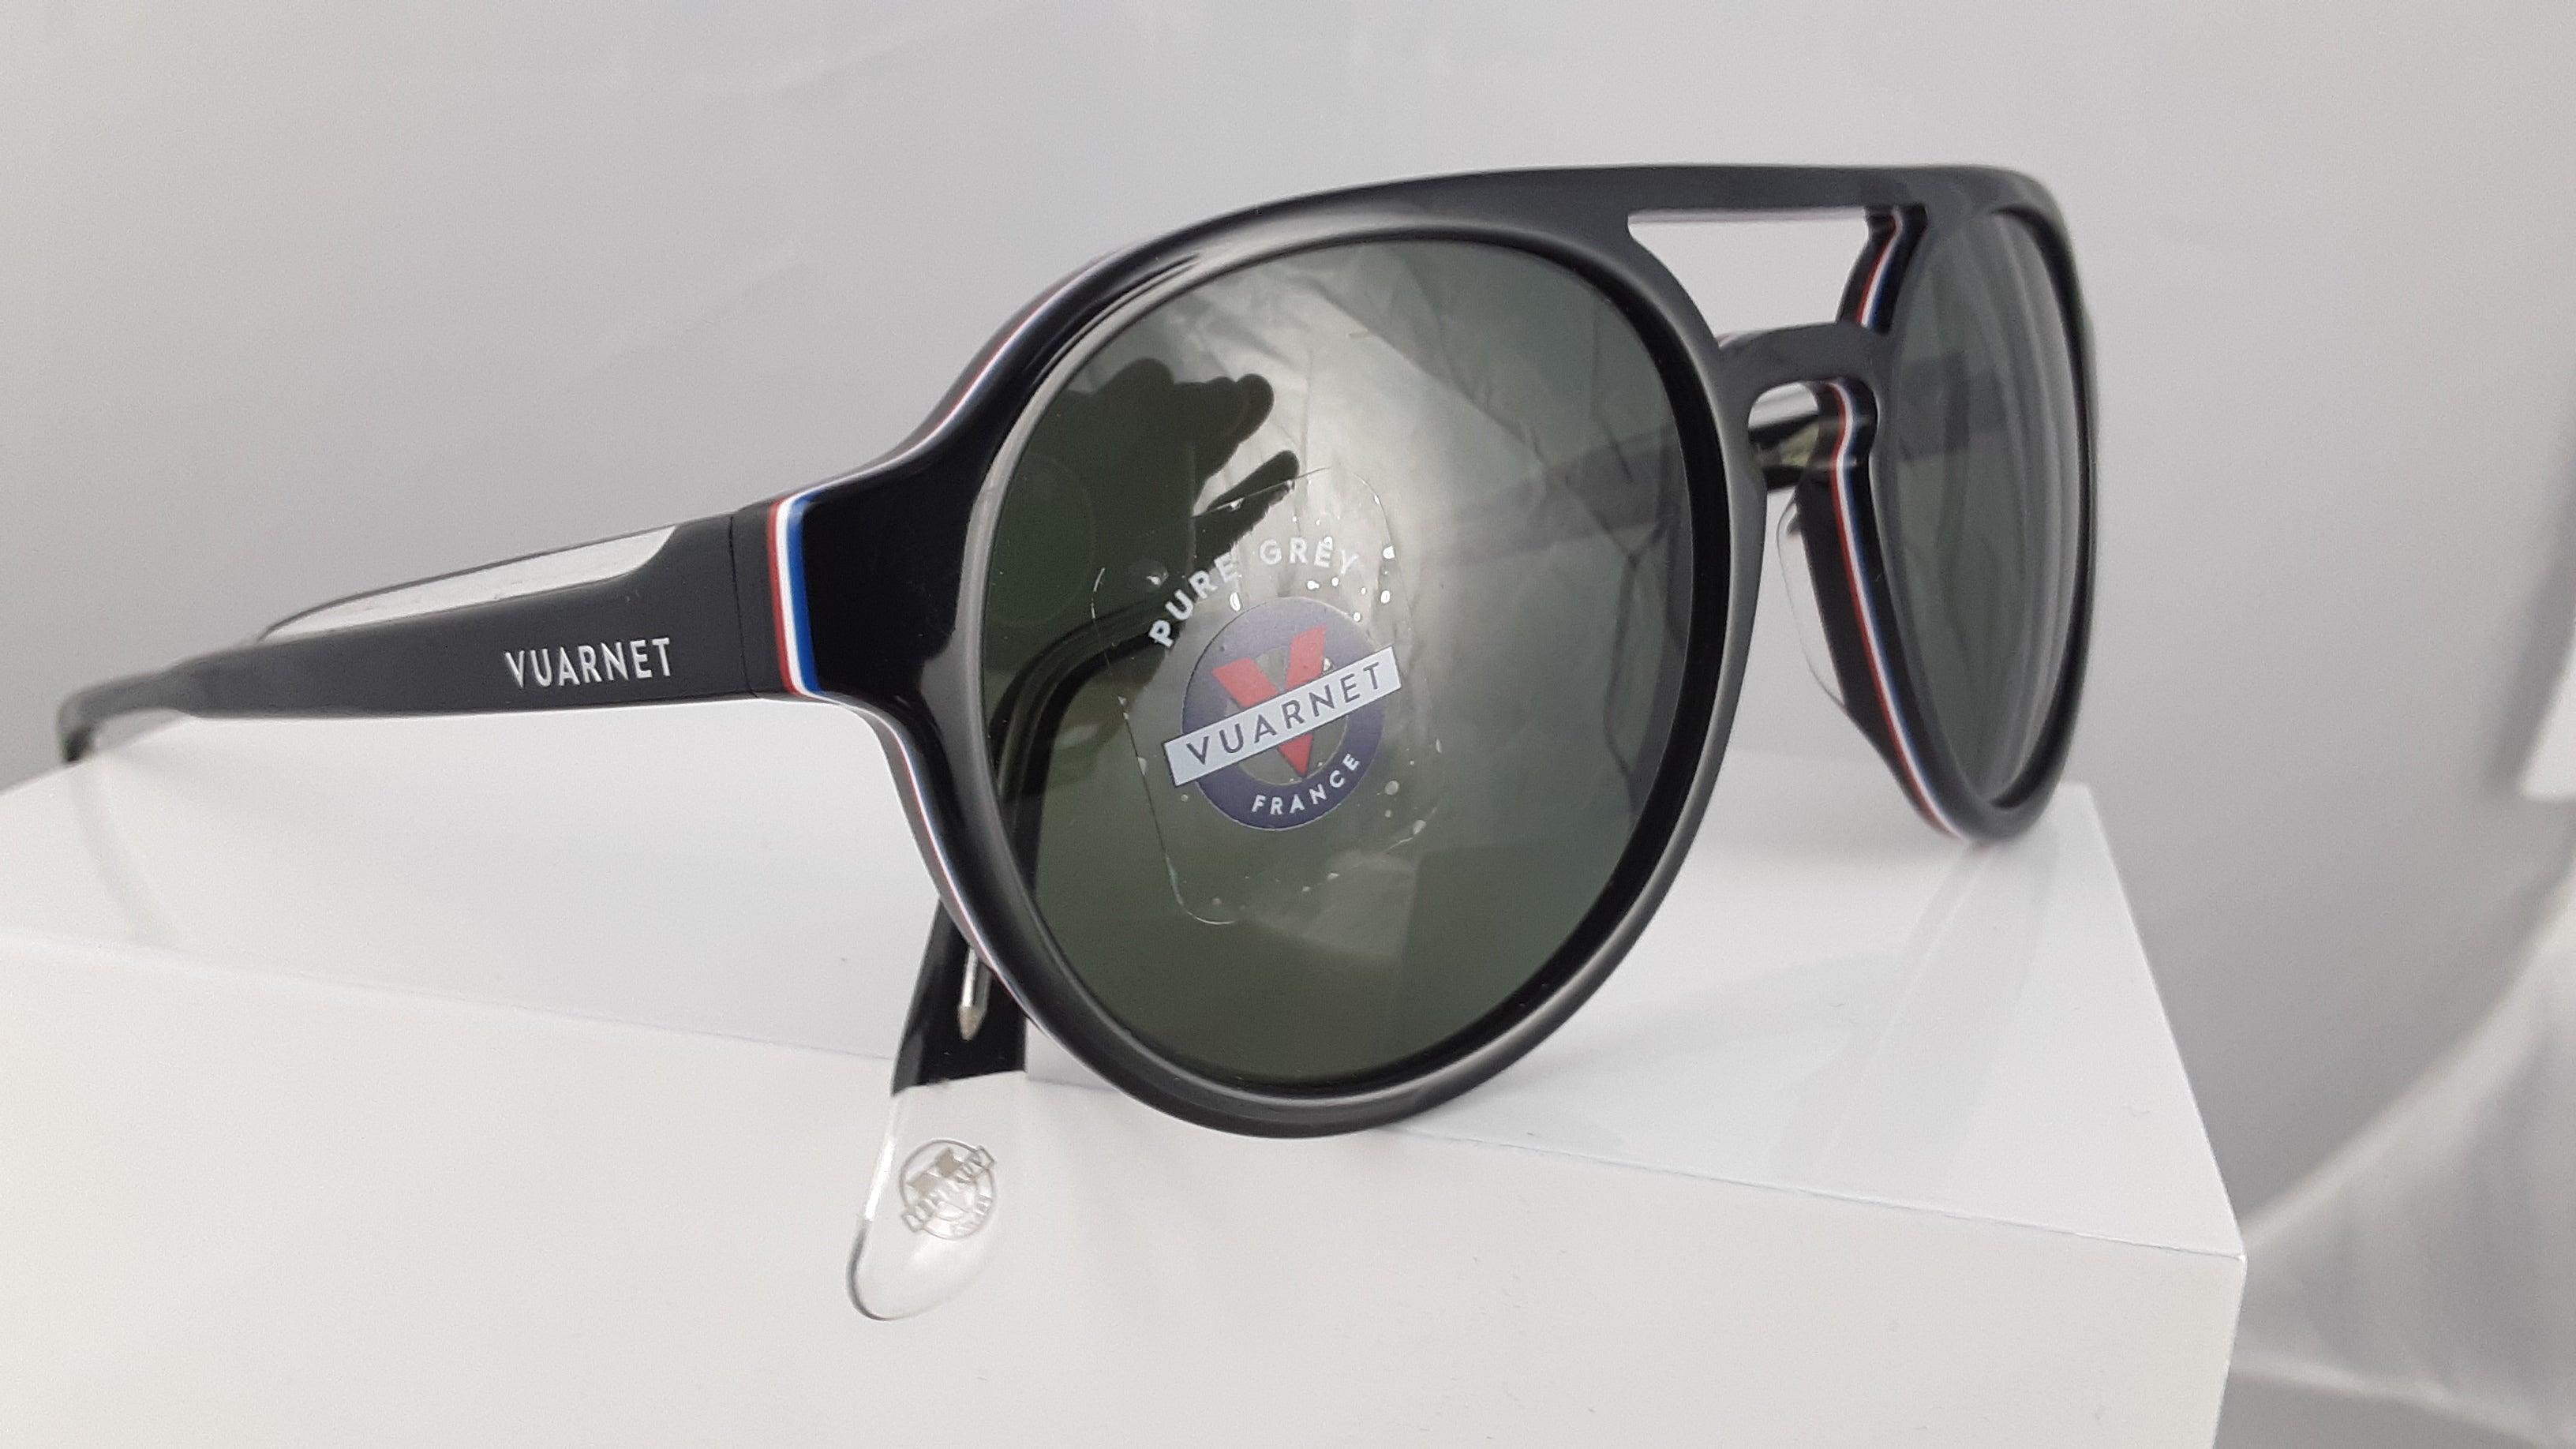 Vuarnet pure grey aviator style sunglasses with red white and blue stripe